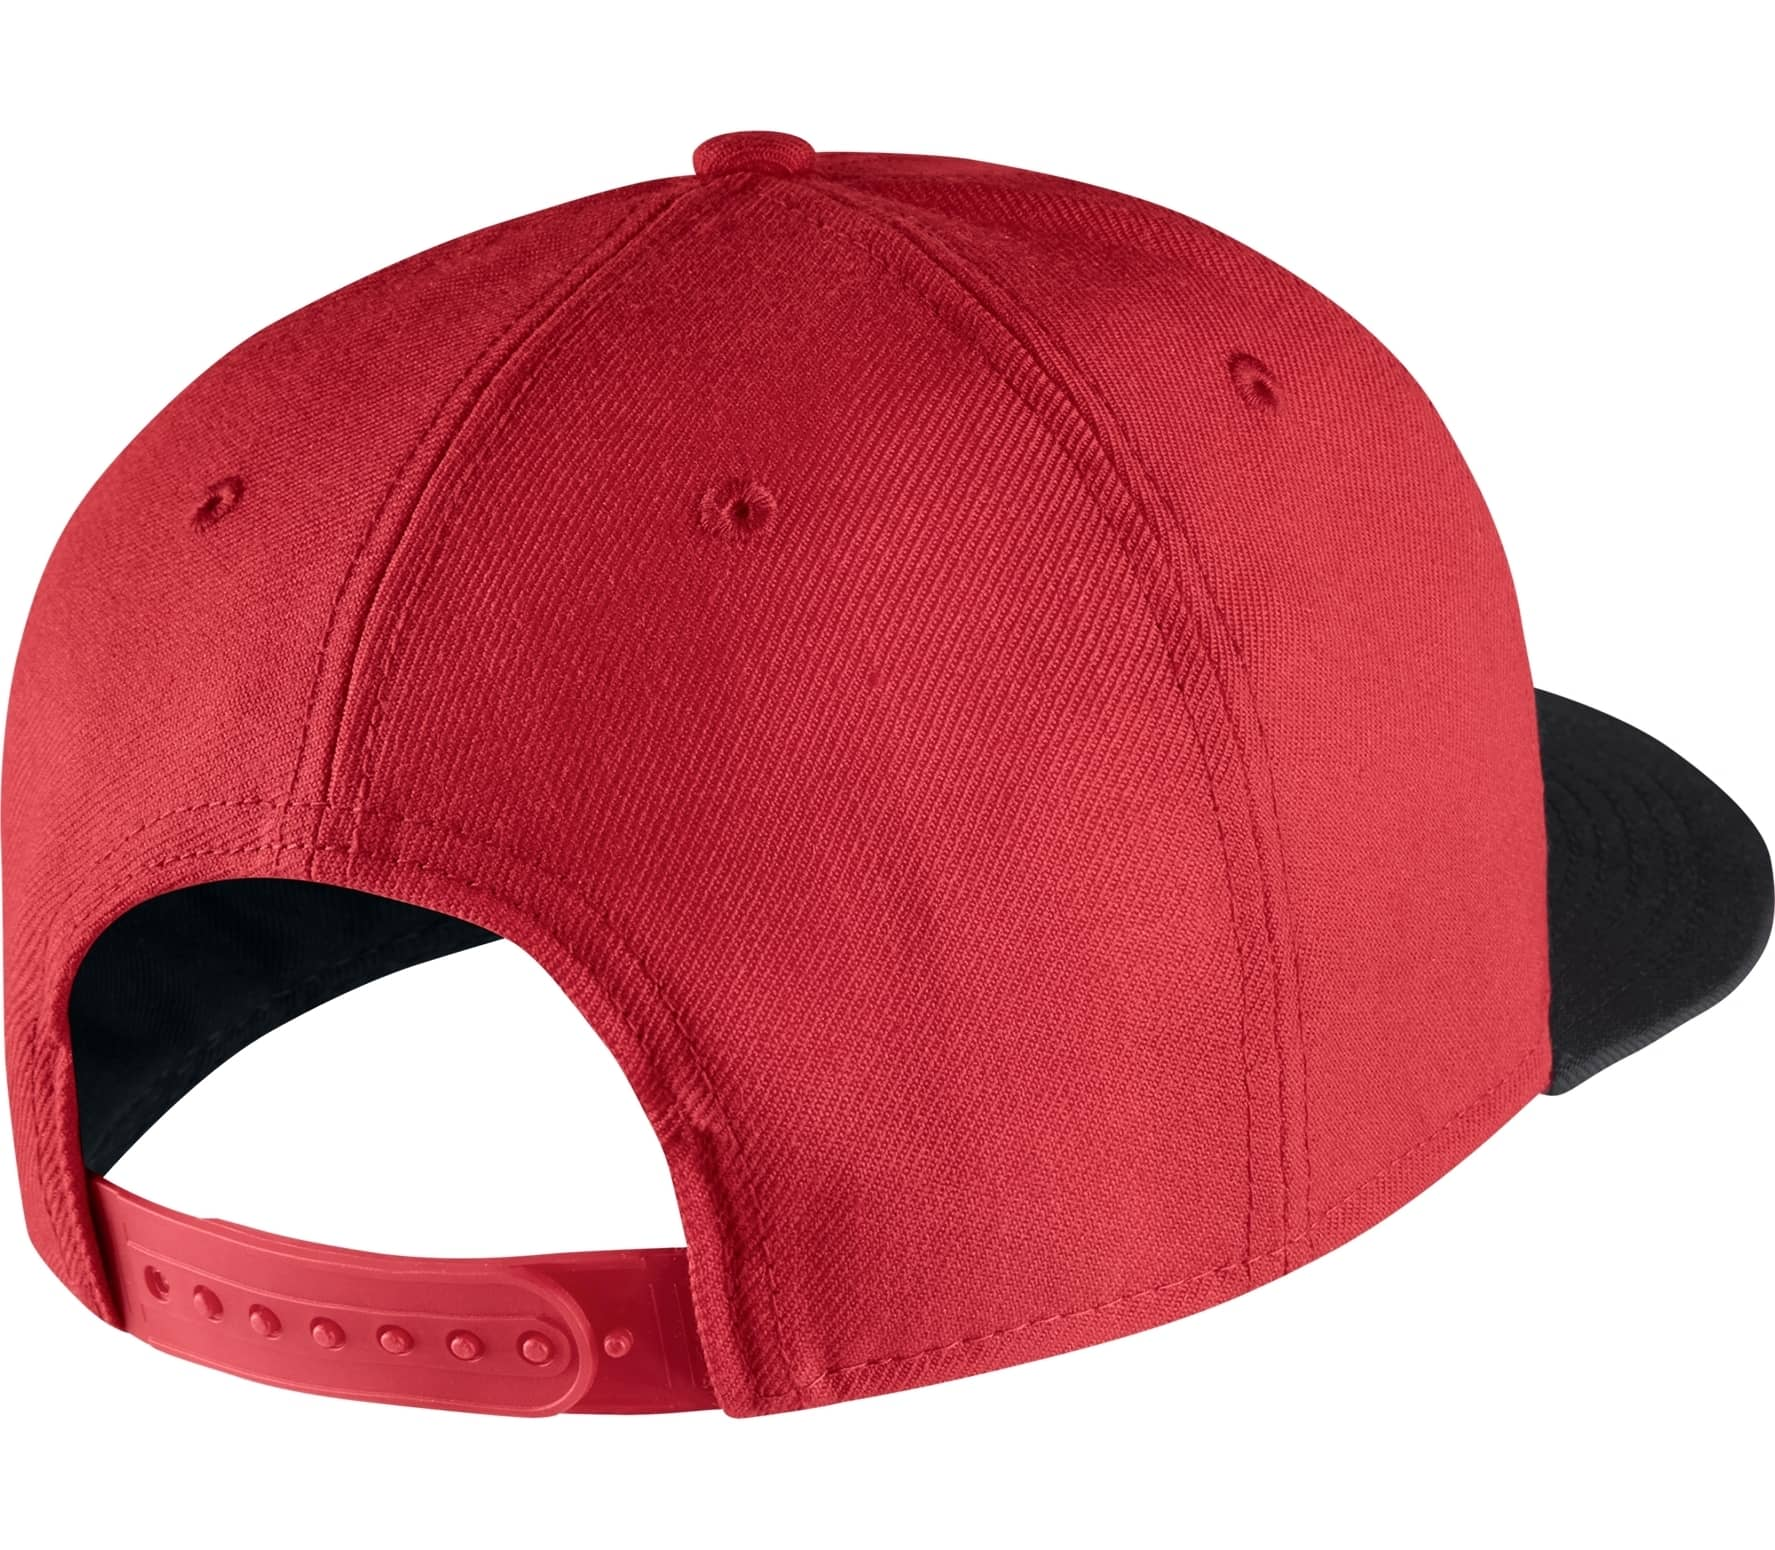 Nike - Limitless True cap (red black) - buy it at the Keller Sports ... 426e75bee305